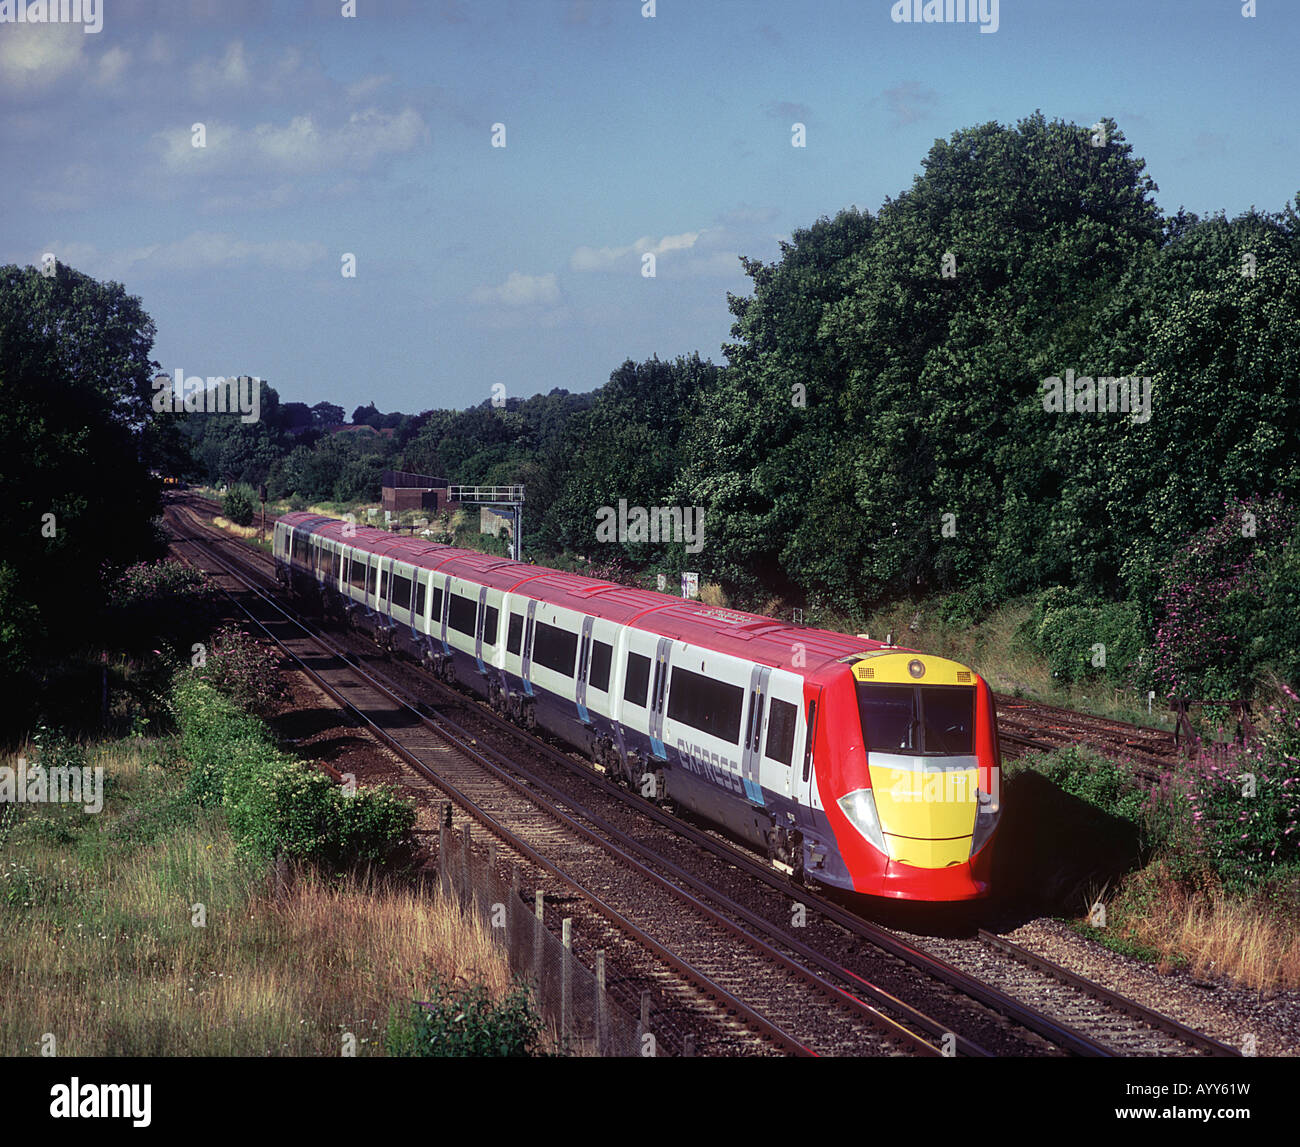 A class 460 Juniper electric multiple unit working a Gatwick Express train service at Coulsdon. - Stock Image